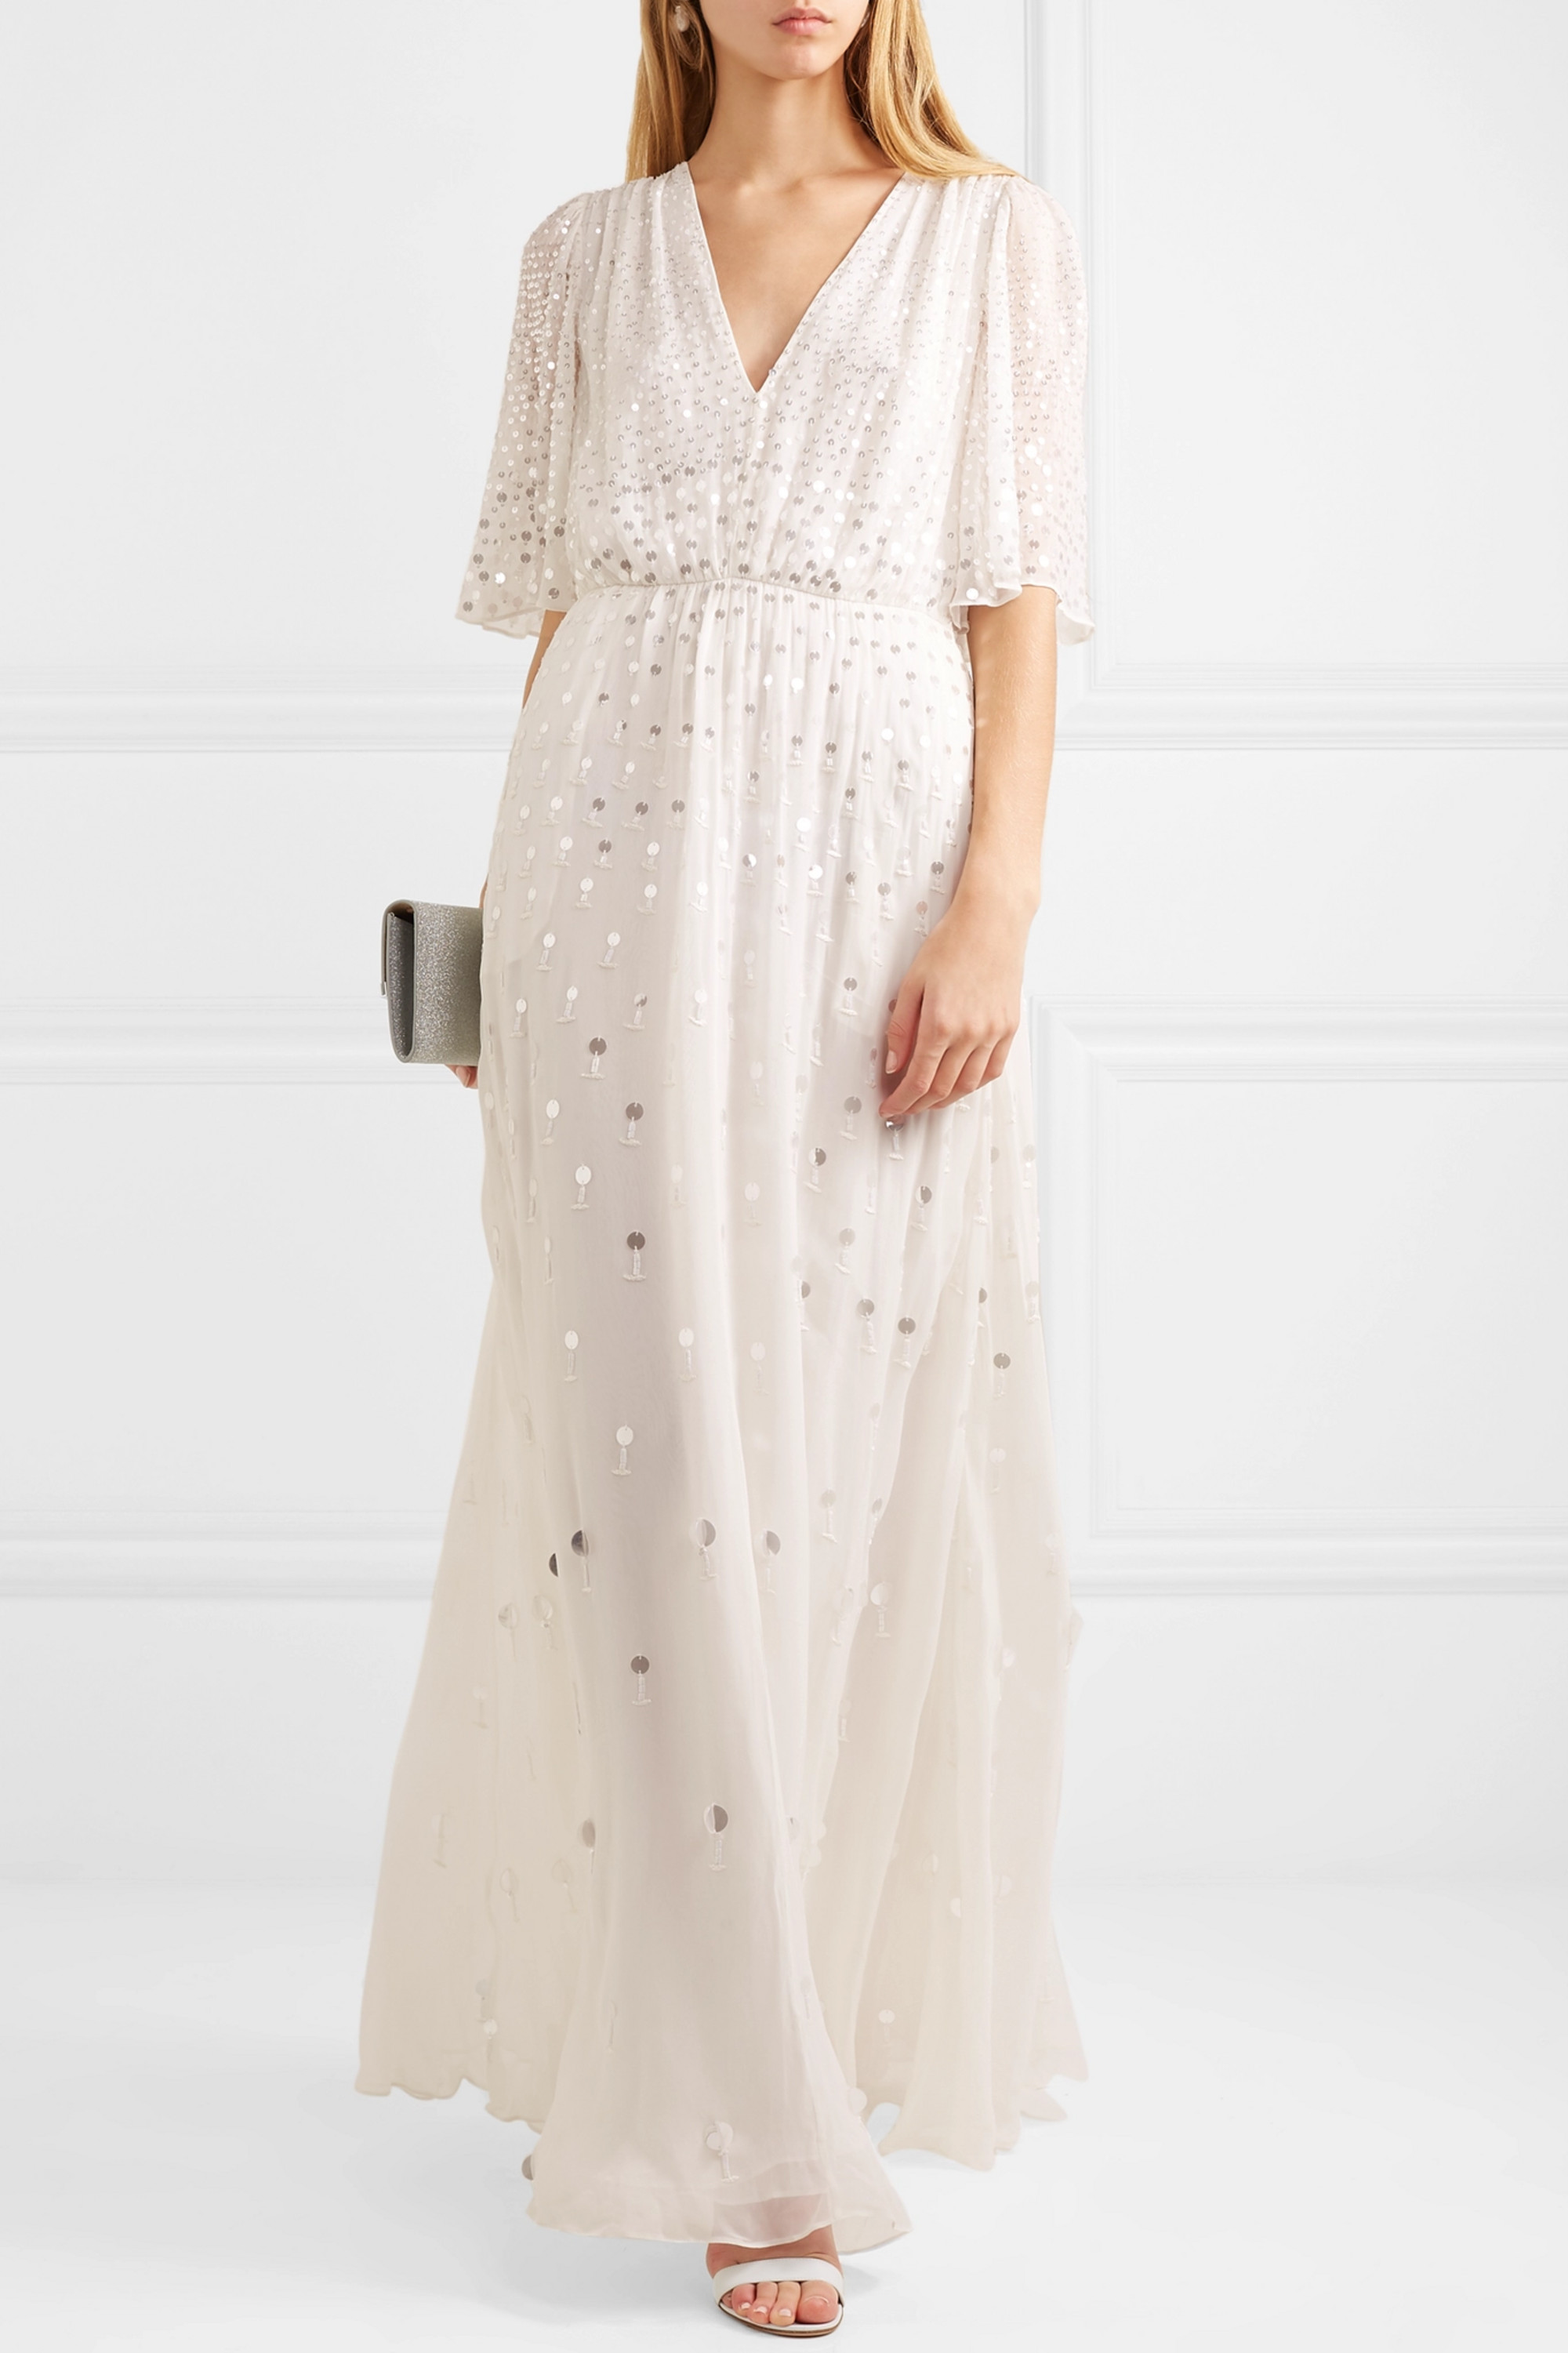 Temperley London Topiary sequined chiffon gown